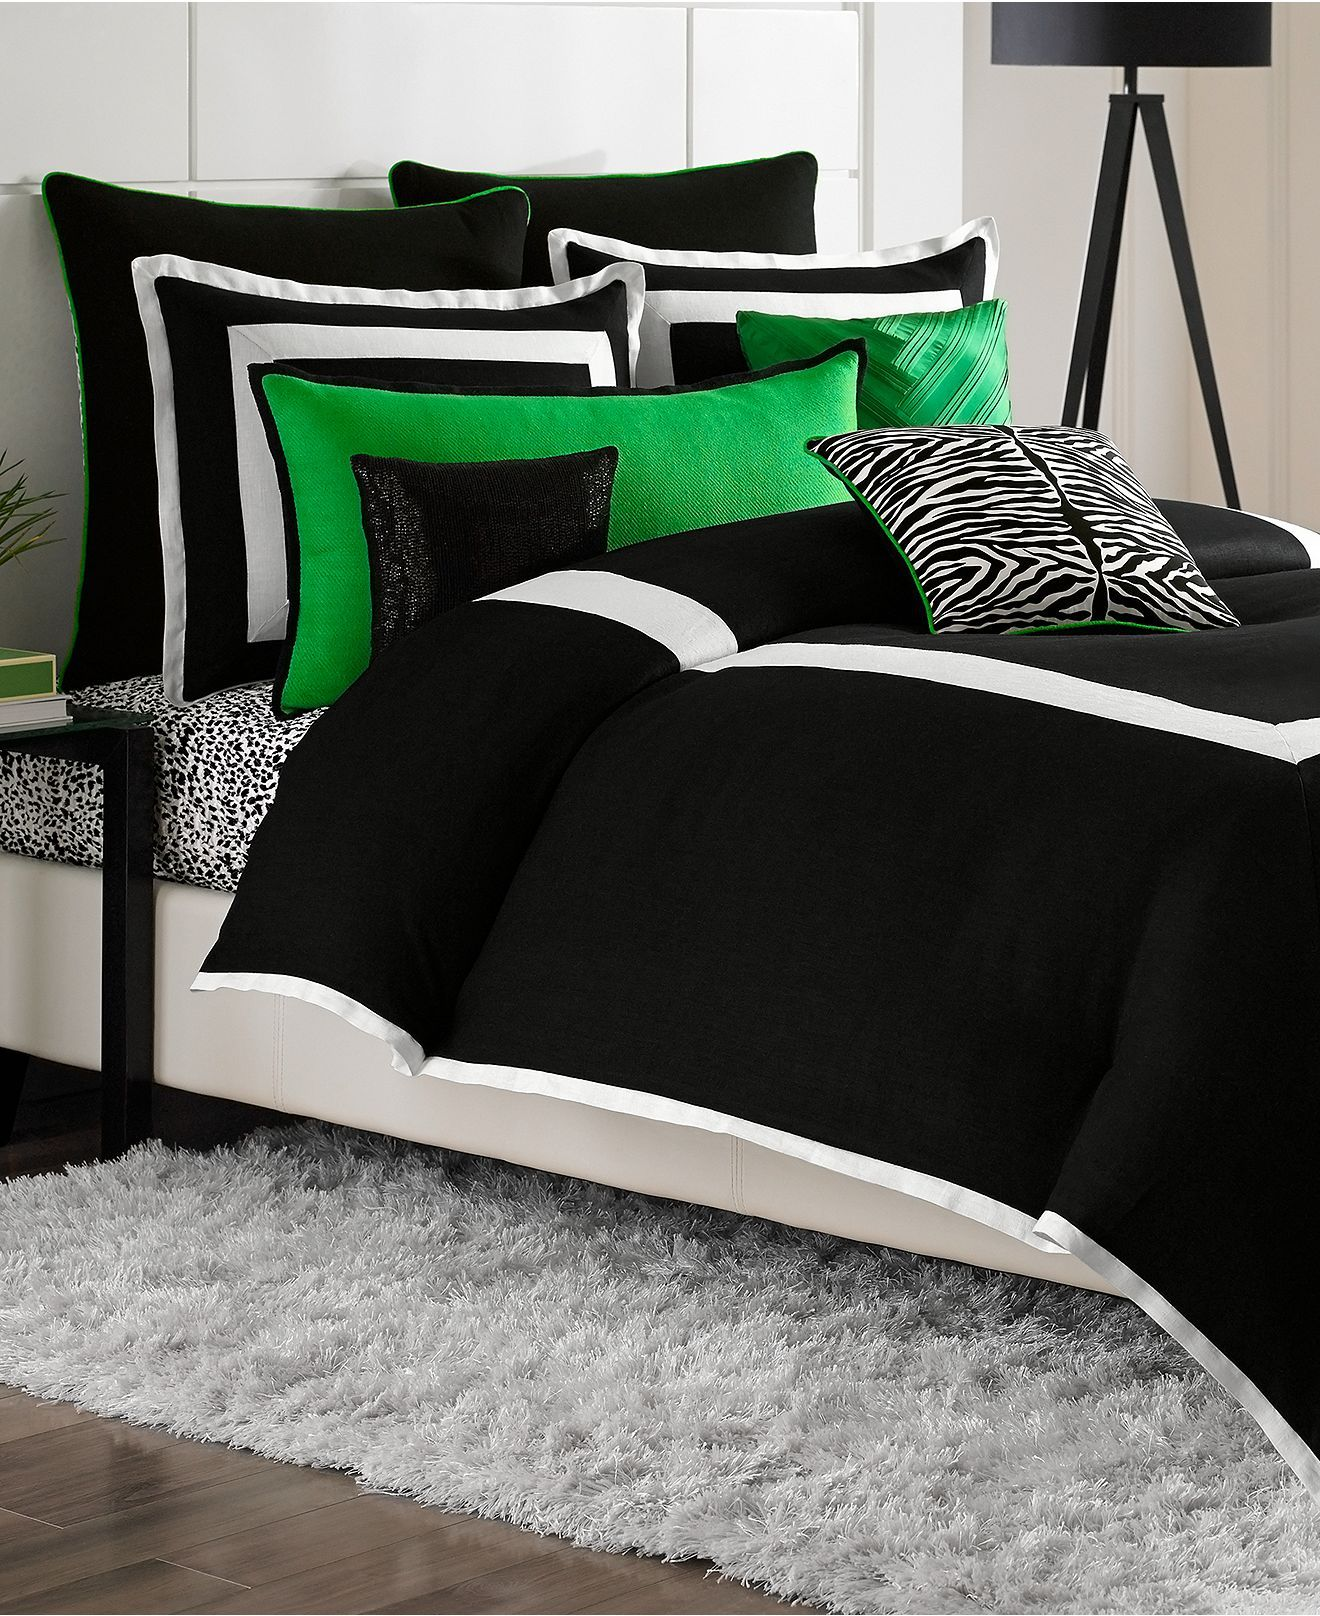 bath grey vince seafoam piece set design bedding overstock irvine shipping free product camuto comforter today